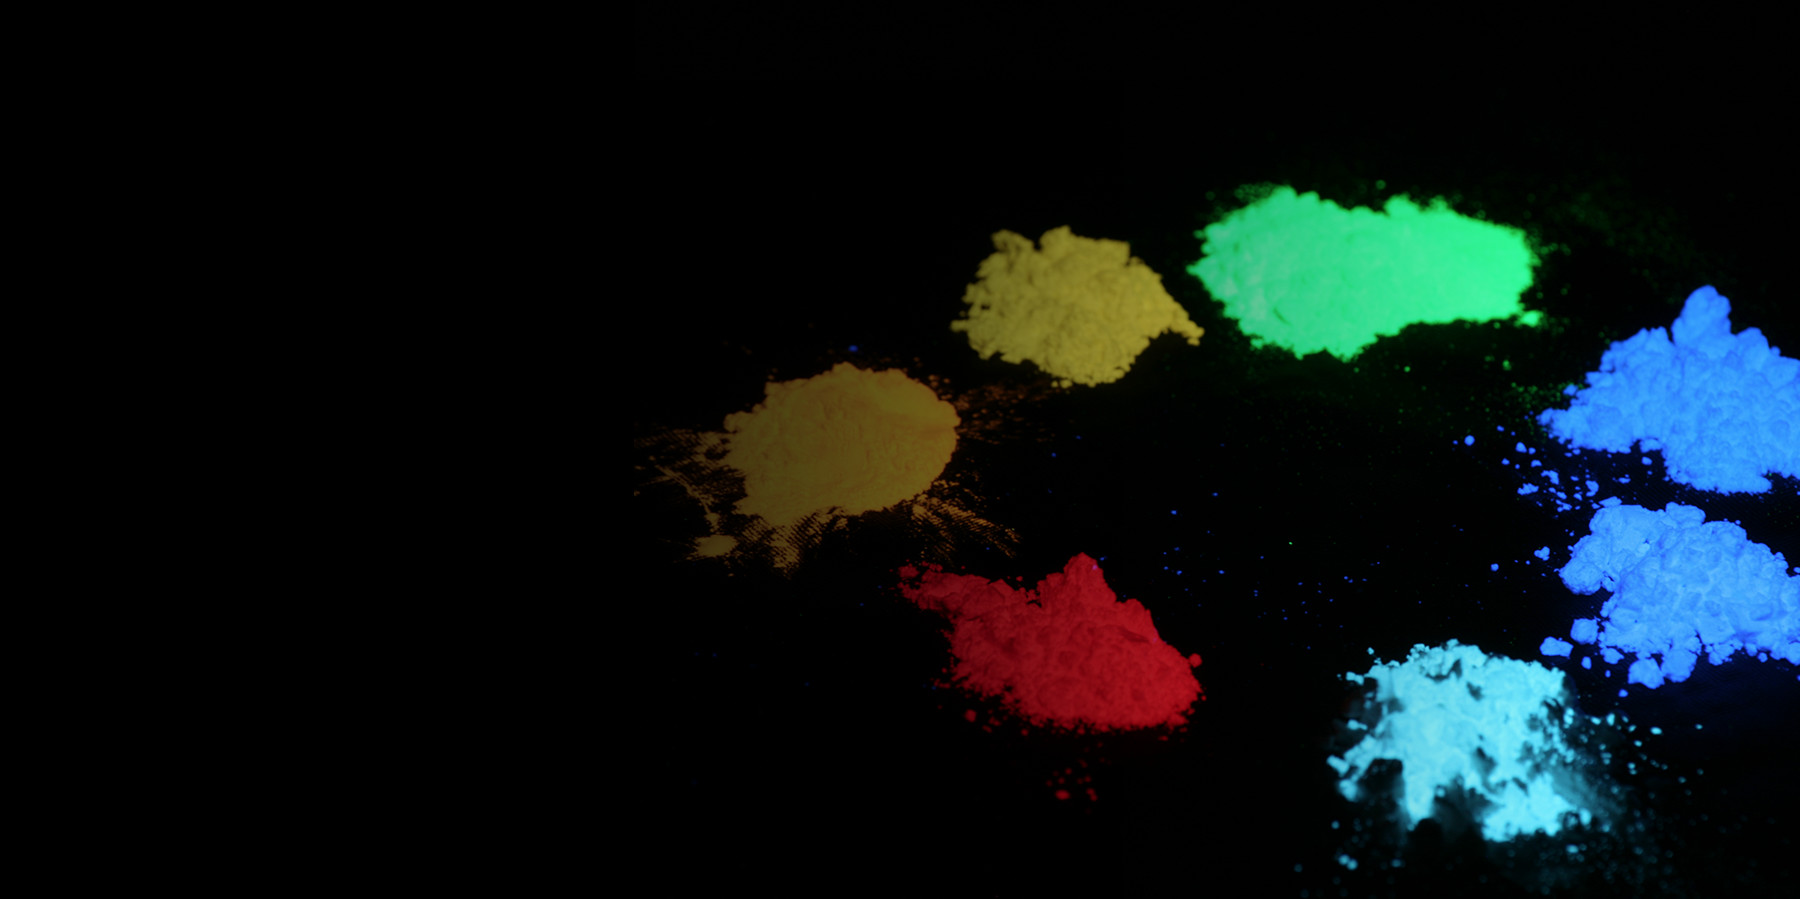 phosphor powders glowing under a UV lamp